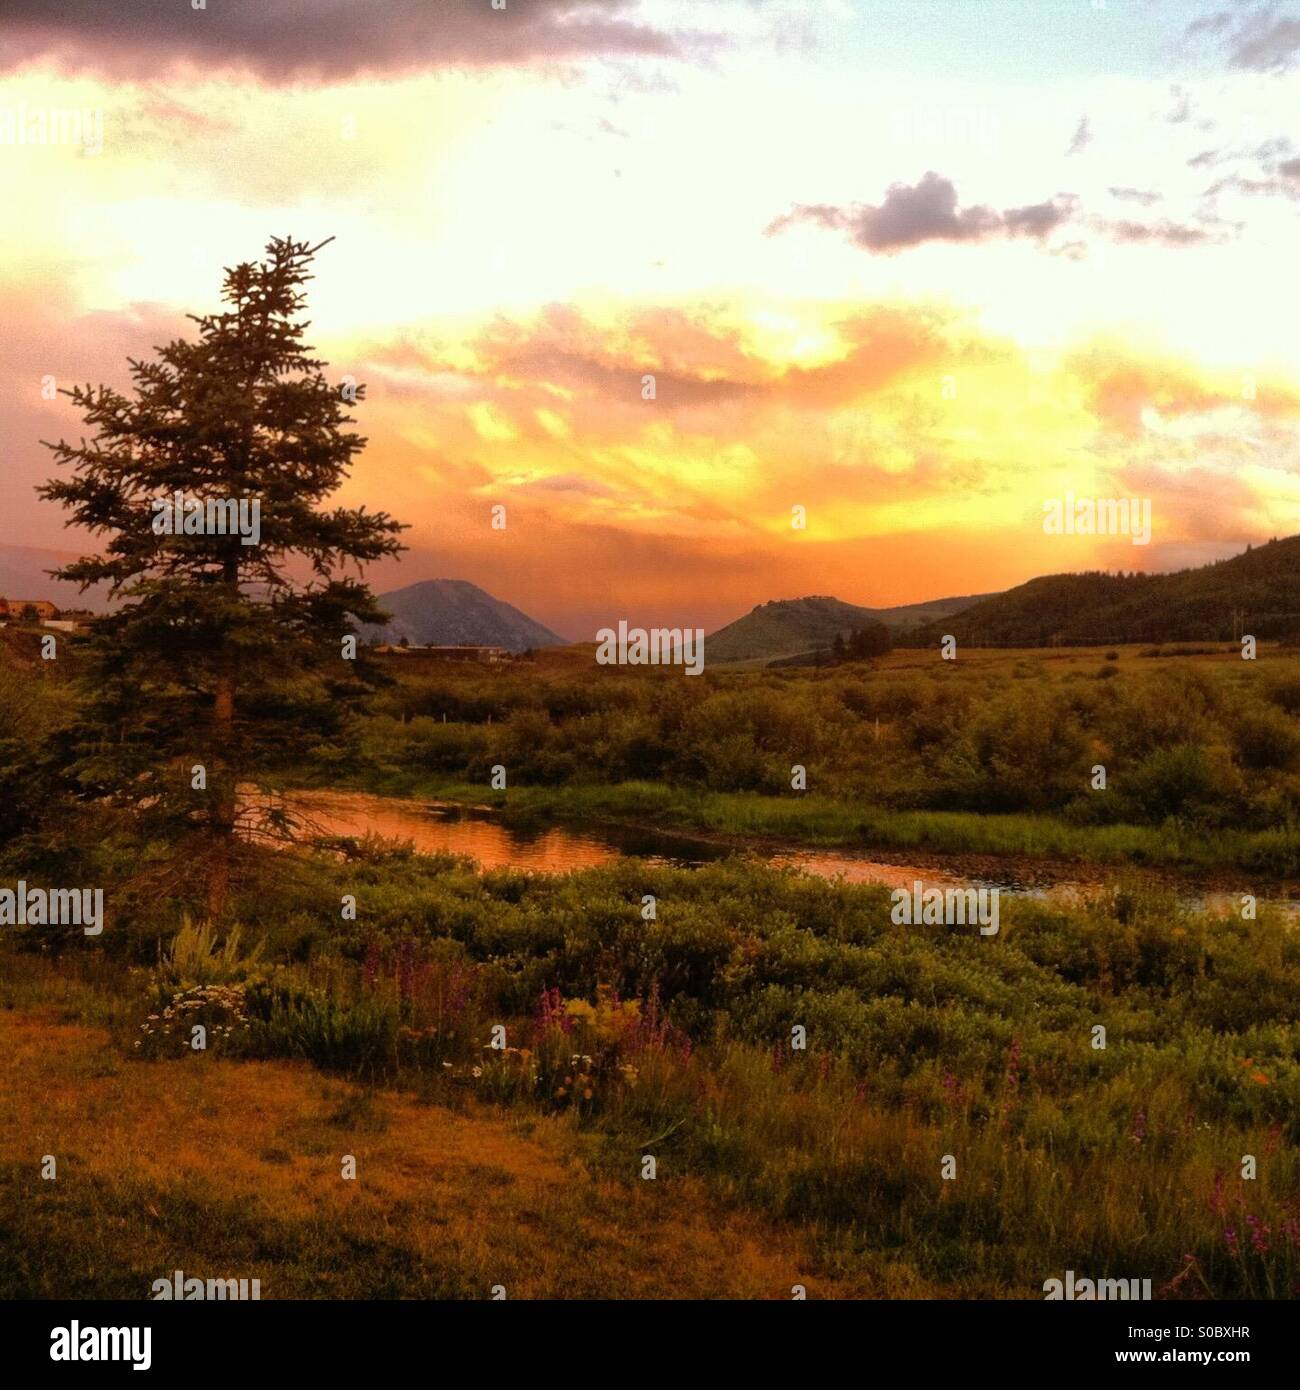 Crested Butte, Colorado - Stock Image